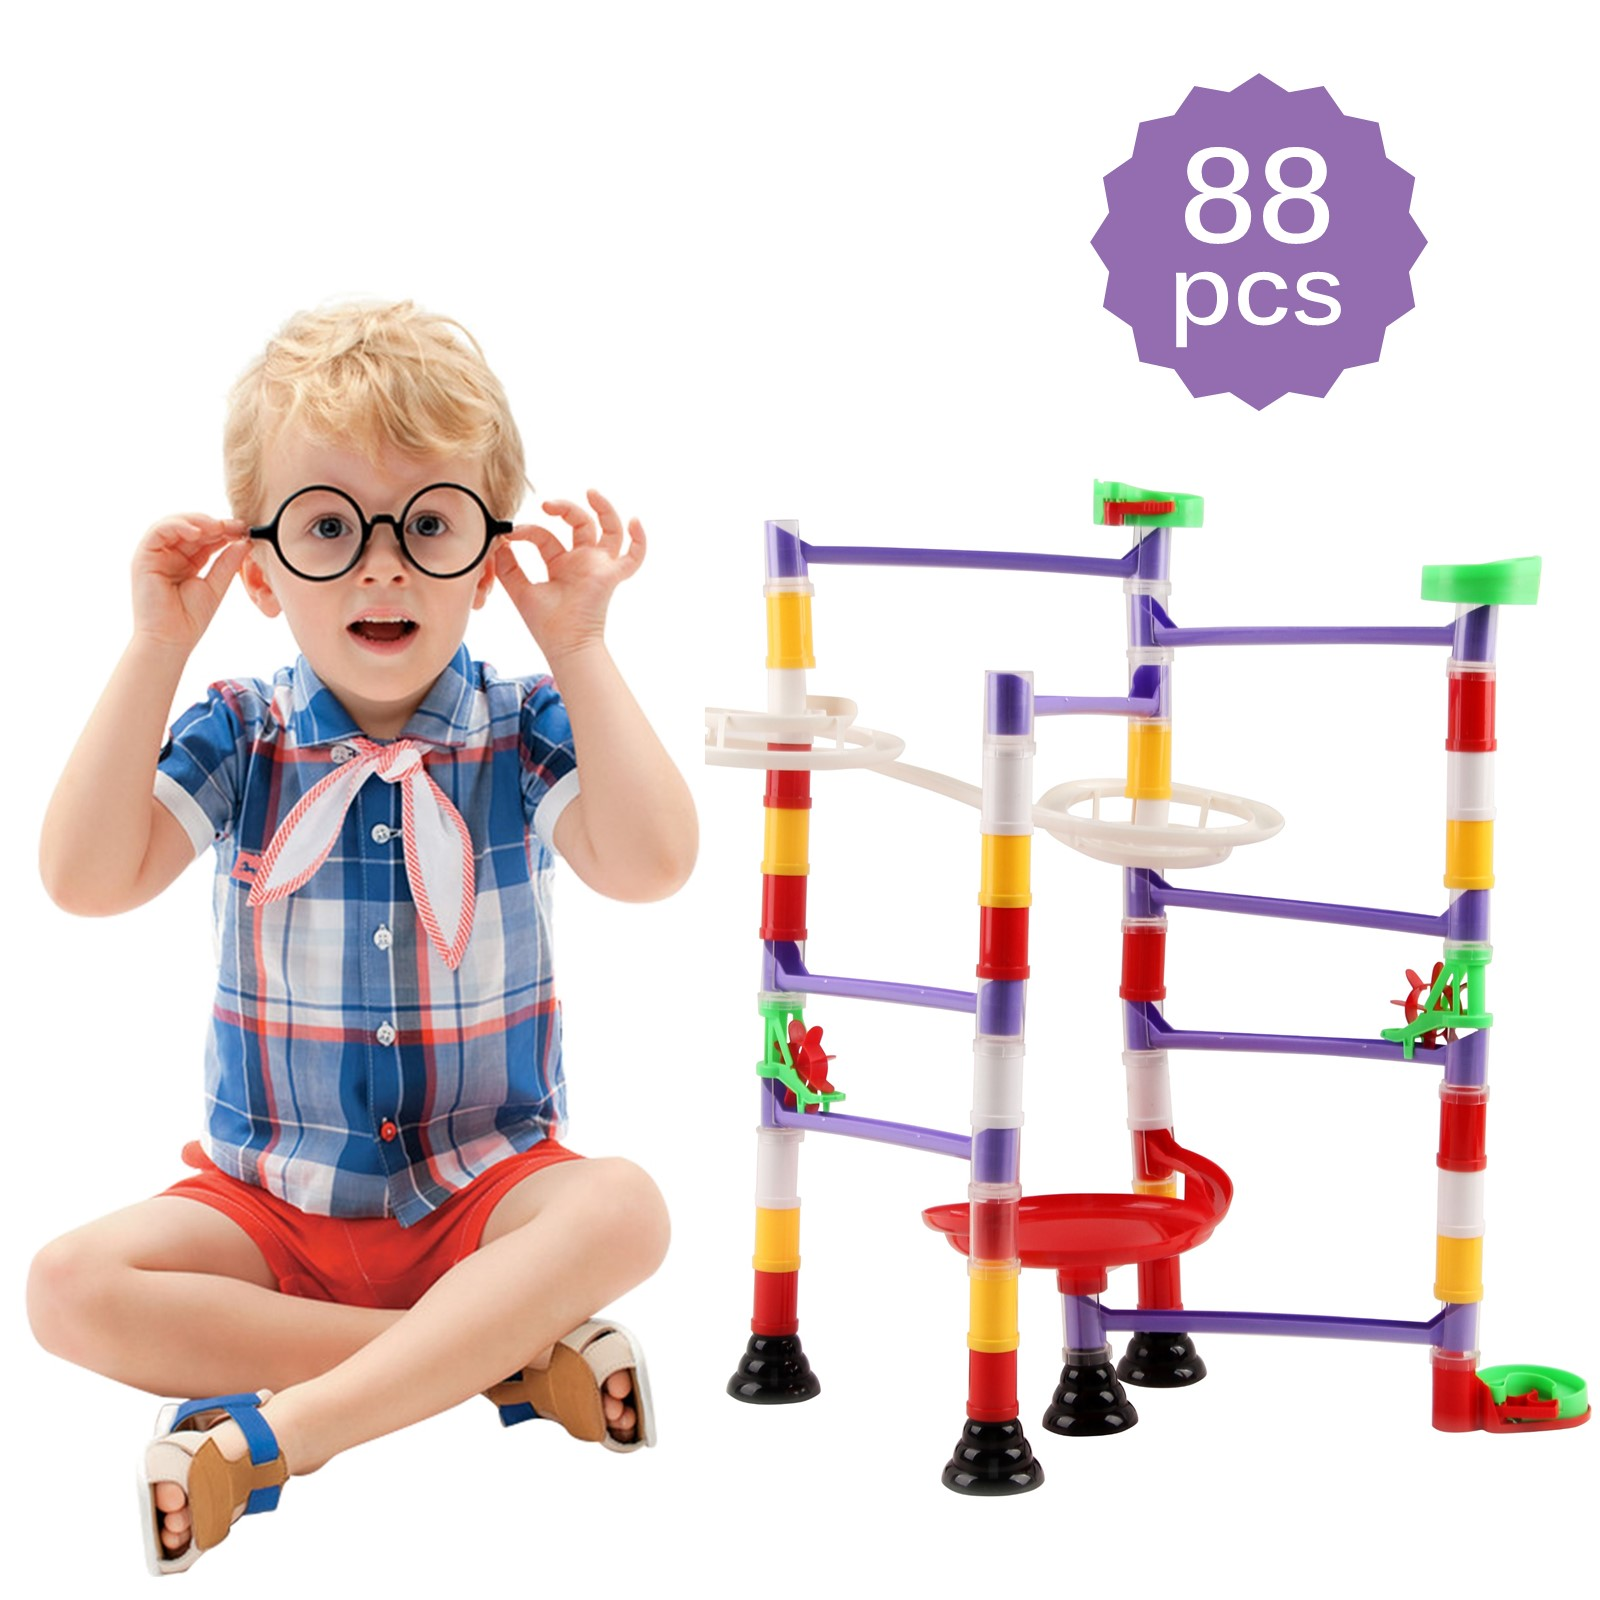 150 Piece Marble Run Premium Set Construction Building Blocks Toys STEM Learning Educational DIY Building Play Toy 100 Translucent Tubes And 50 Glass Marbles Perfect Children Gift Boy Girl